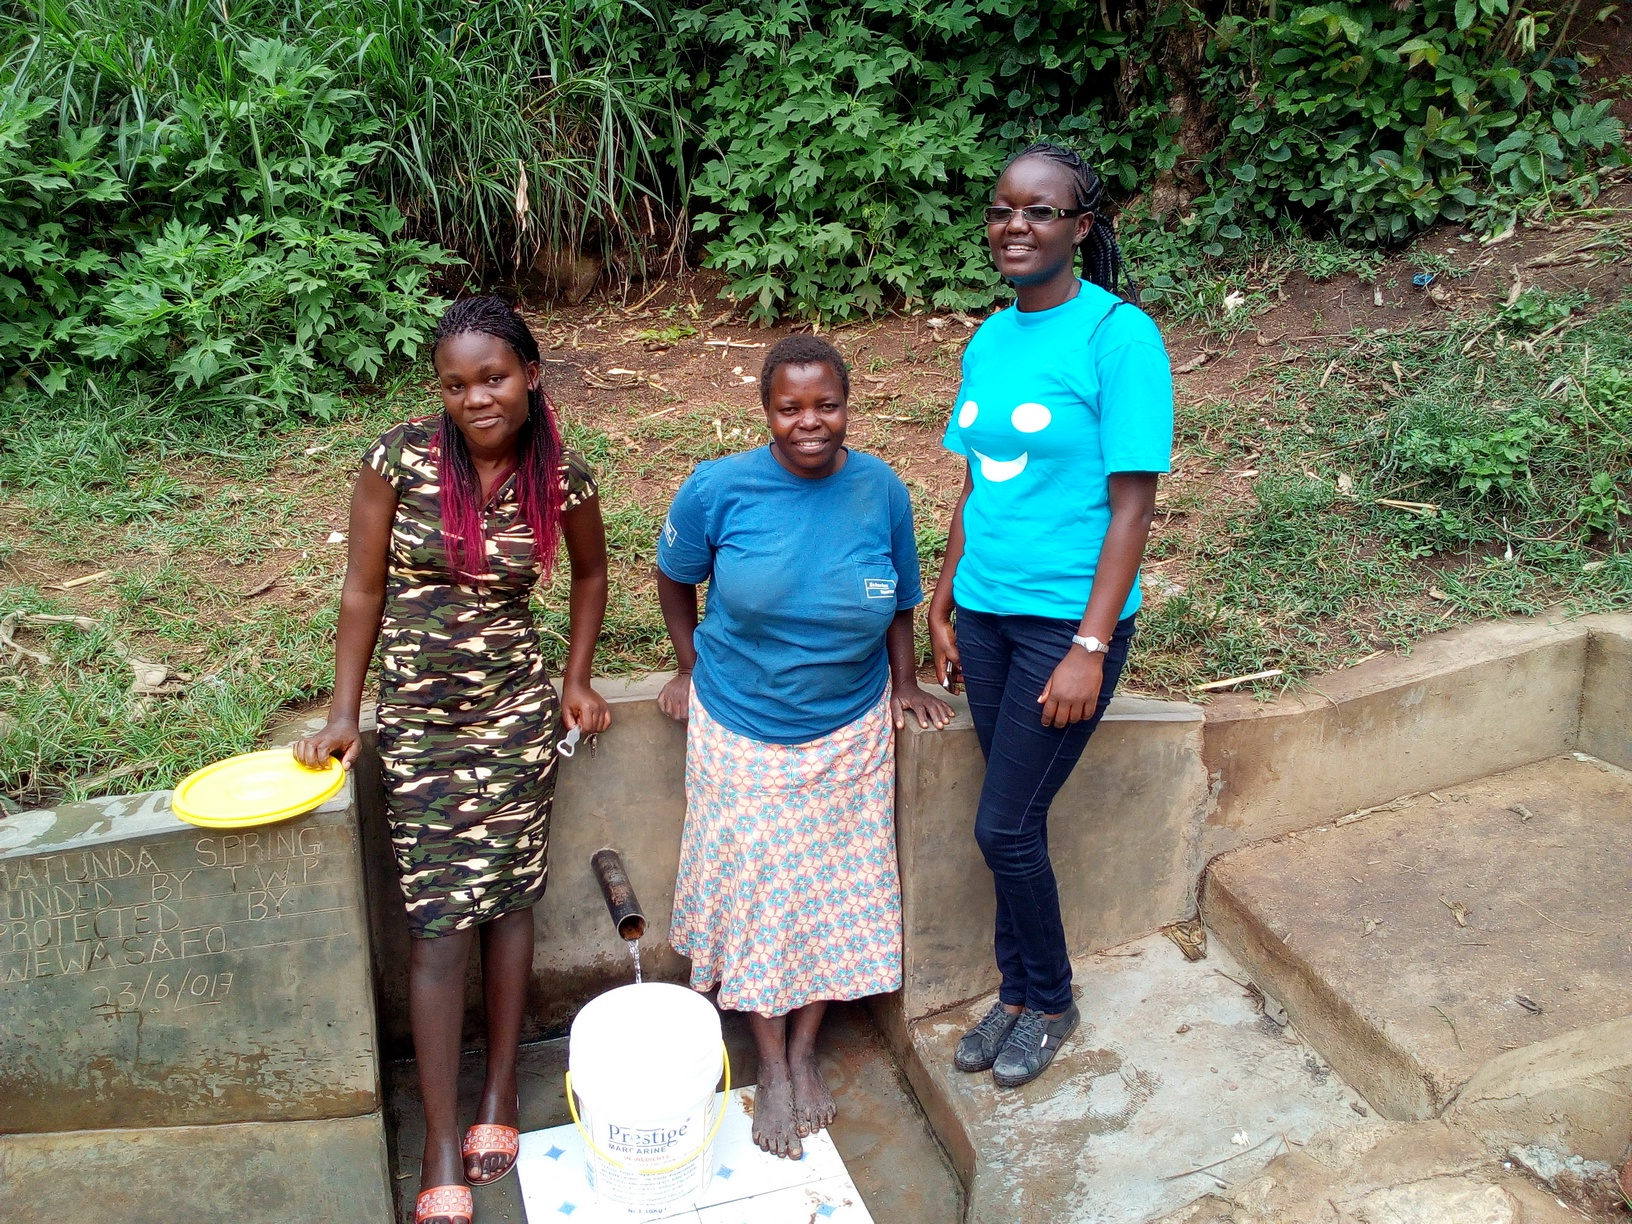 The Water Project : kenya4739-magdalyne-wasambili-and-field-officer-olivia-bomji-at-the-spring